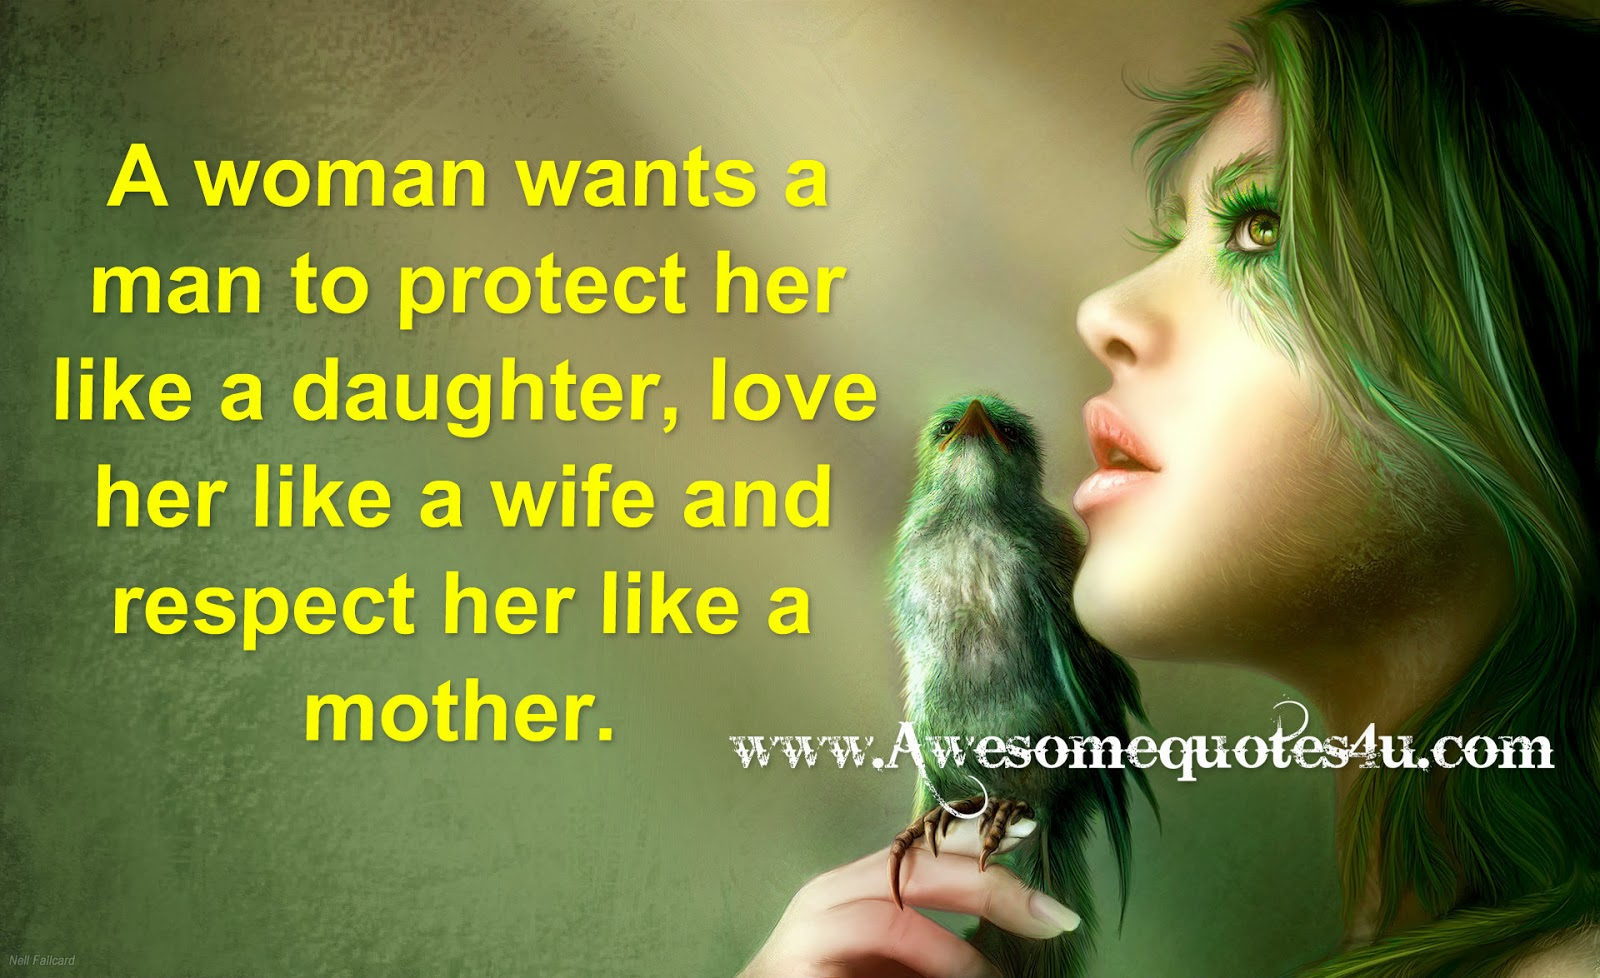 What A Woman Wants From A Man Quotes: Awesome Quotes: A Woman Wants A Man To Protect, Love And